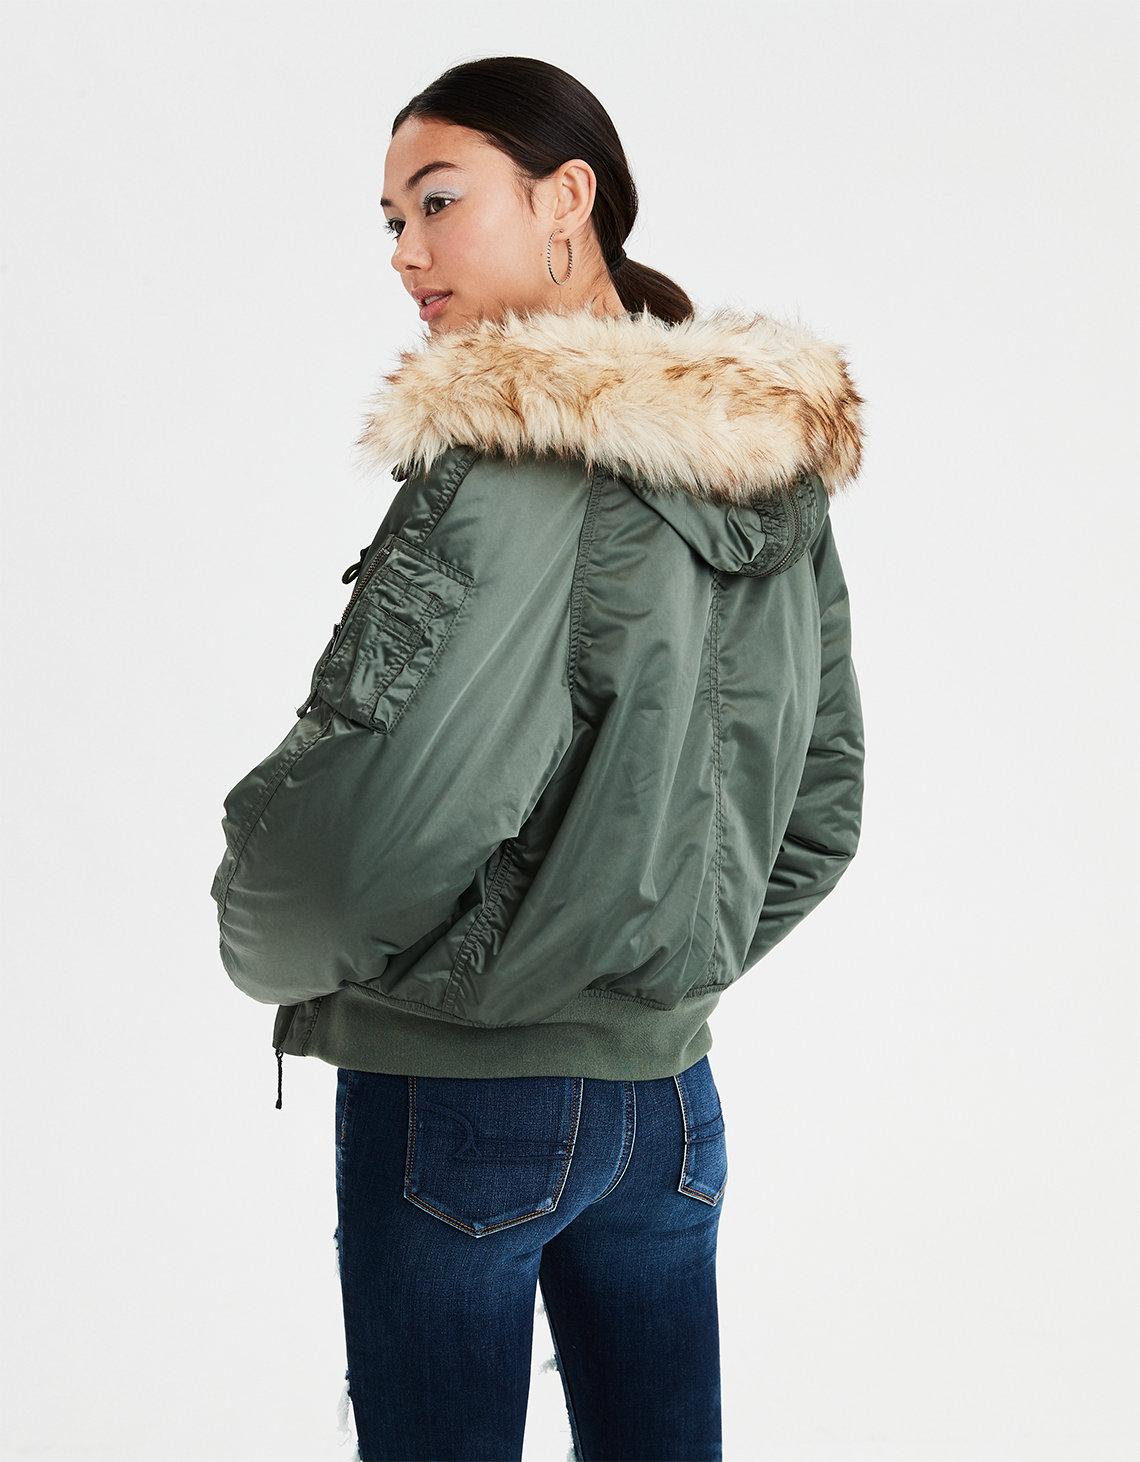 58d34dfe0 American Eagle Green Ae Flight Bomber Jacket